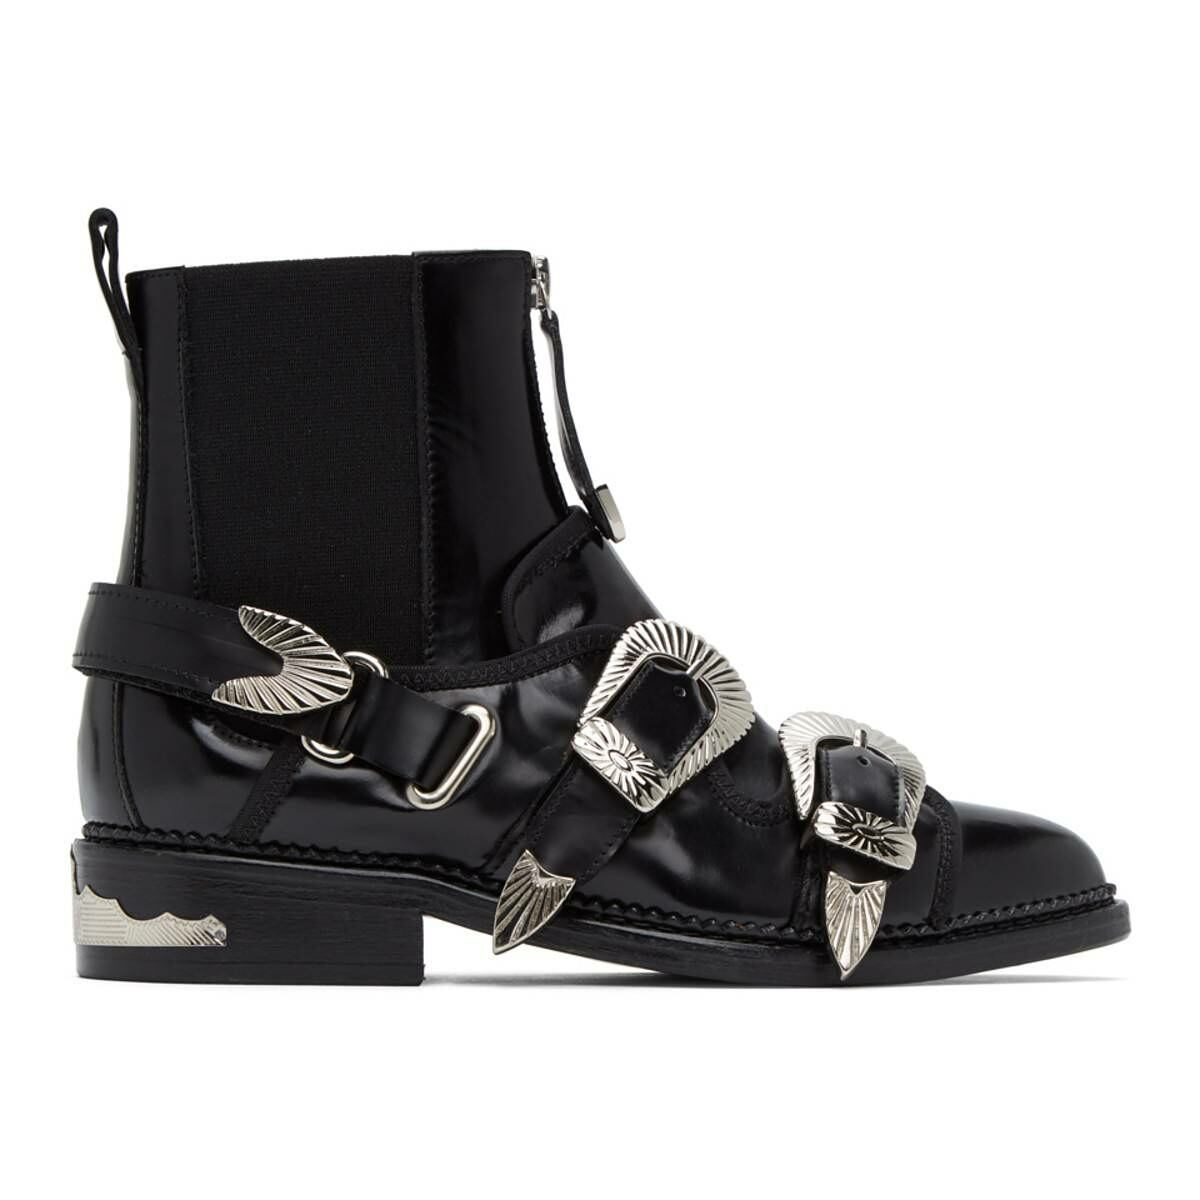 Toga Pulla Black Two Buckle Western Boots Ssense USA WOMEN Women SHOES Womens ANKLE BOOTS